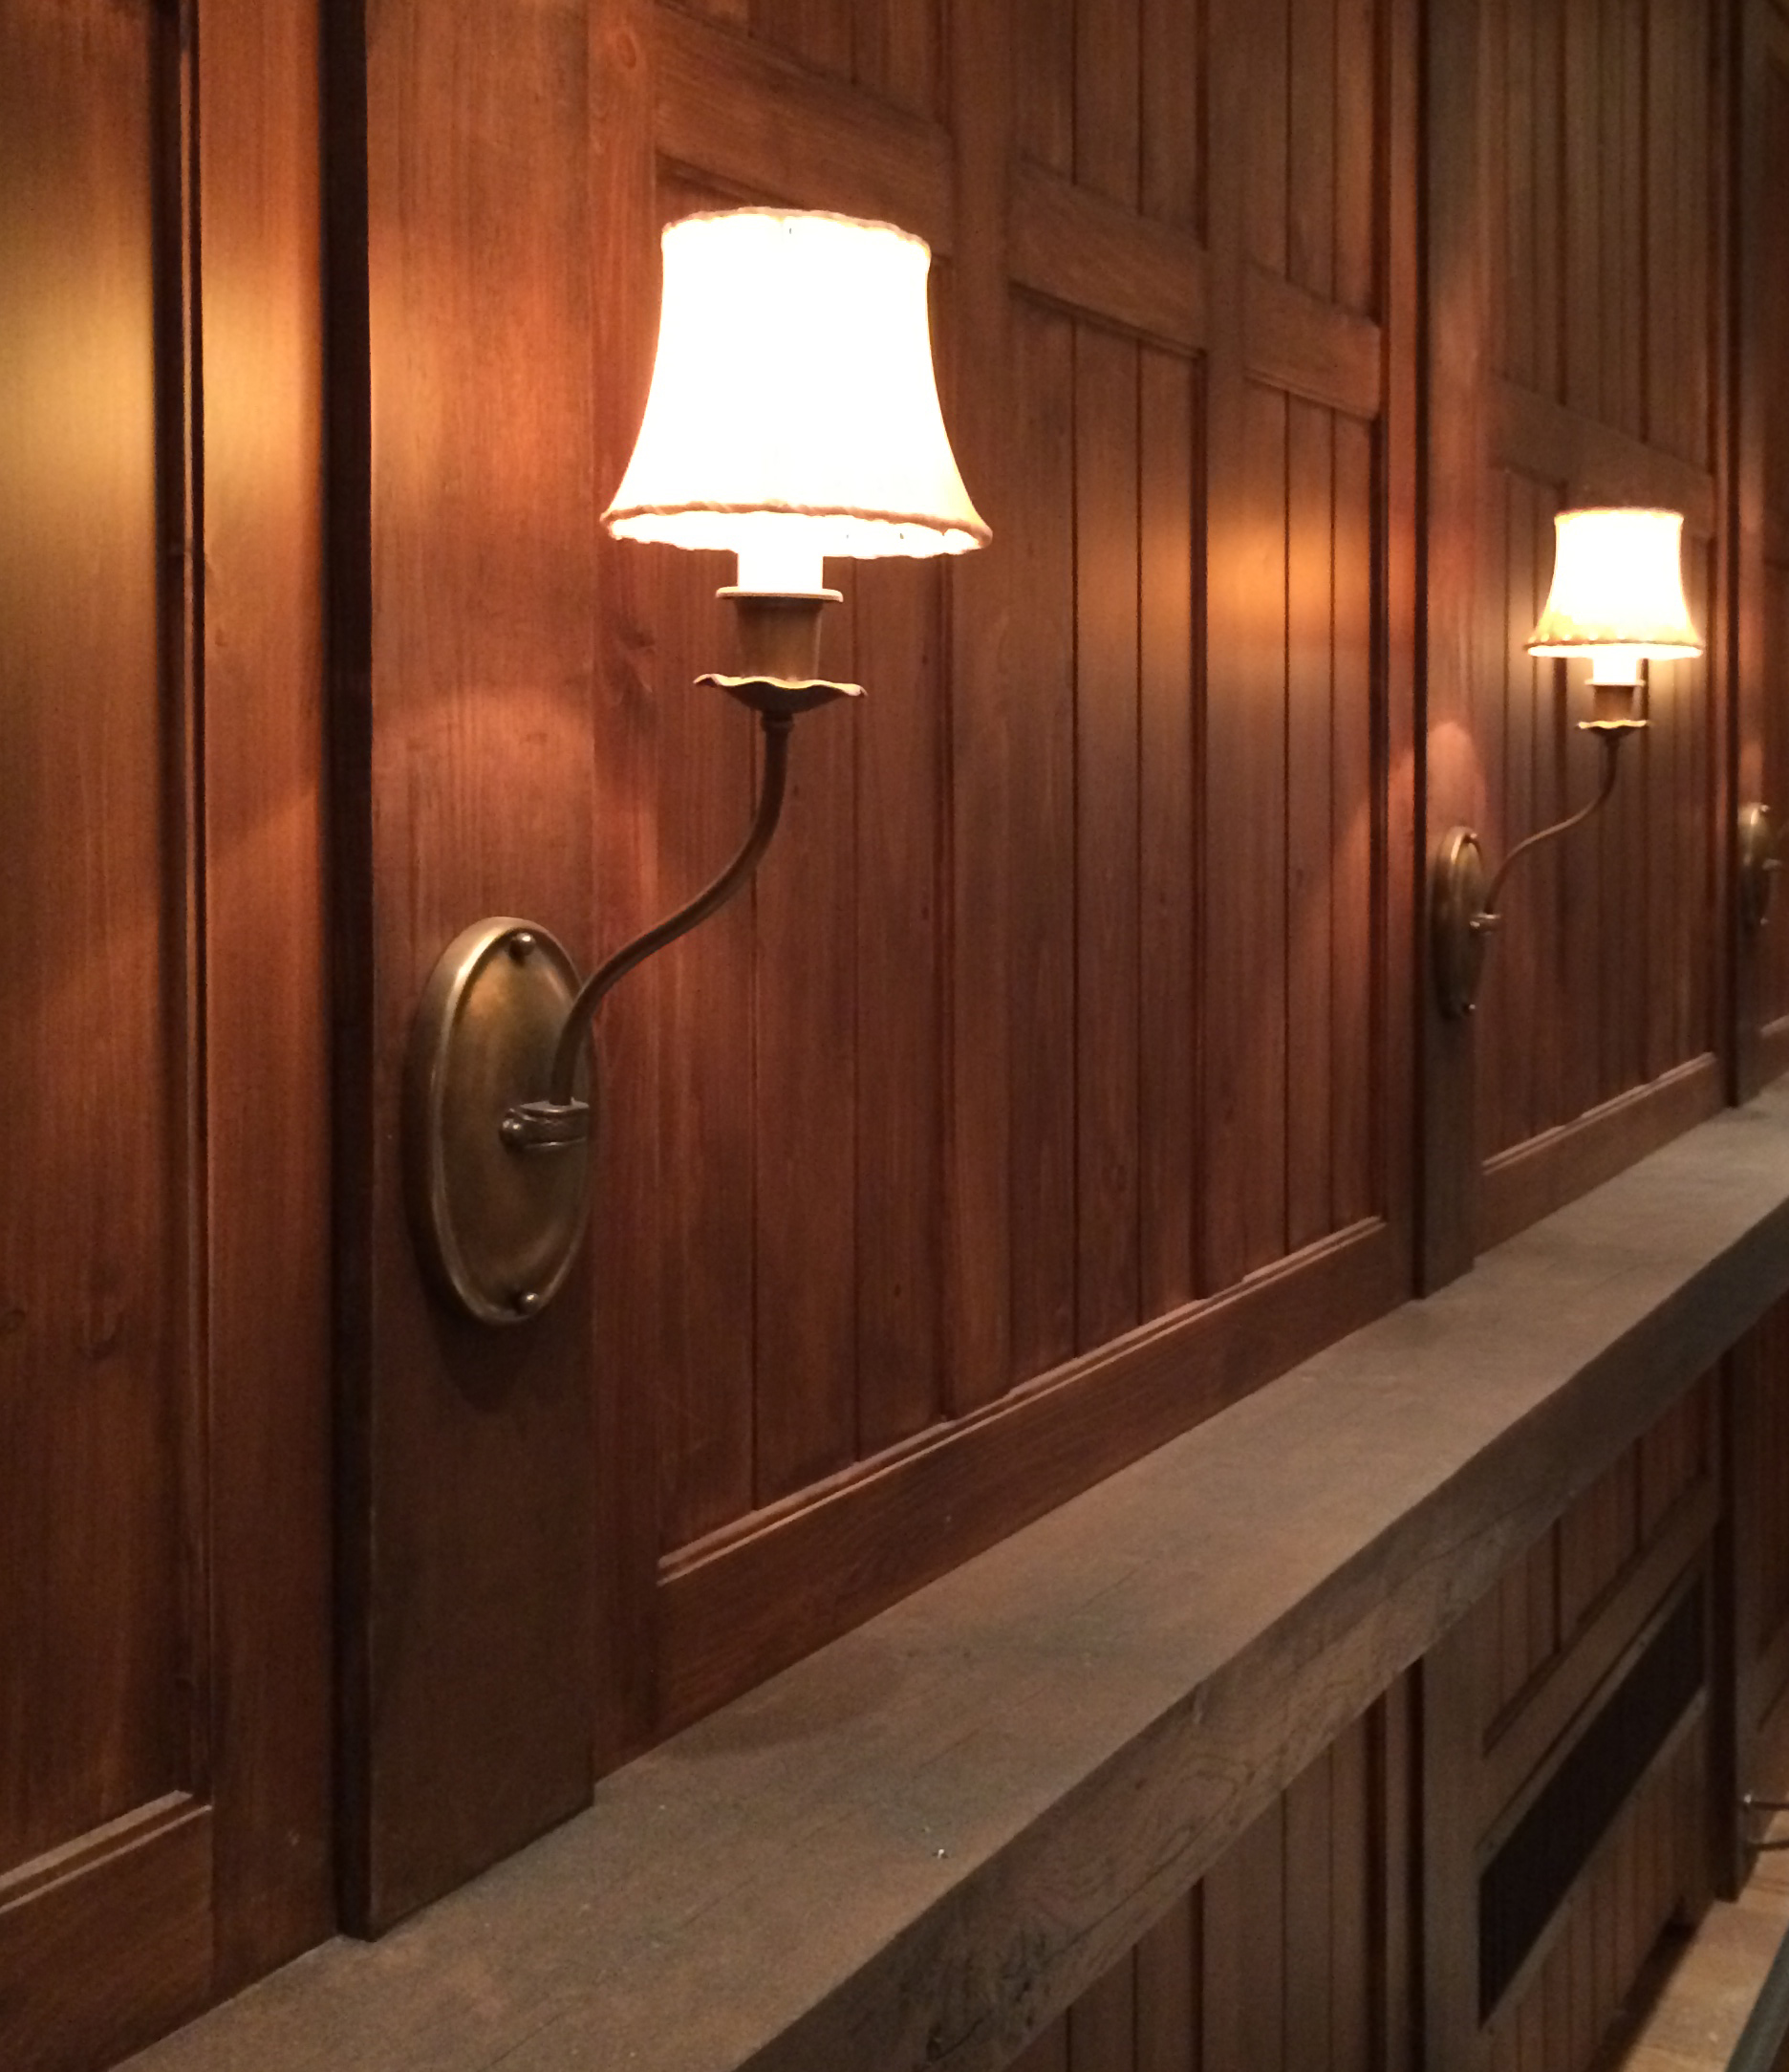 New Rough-Hewn Timber Drink Ledge with Wall Paneling and Custom Wall Sconces